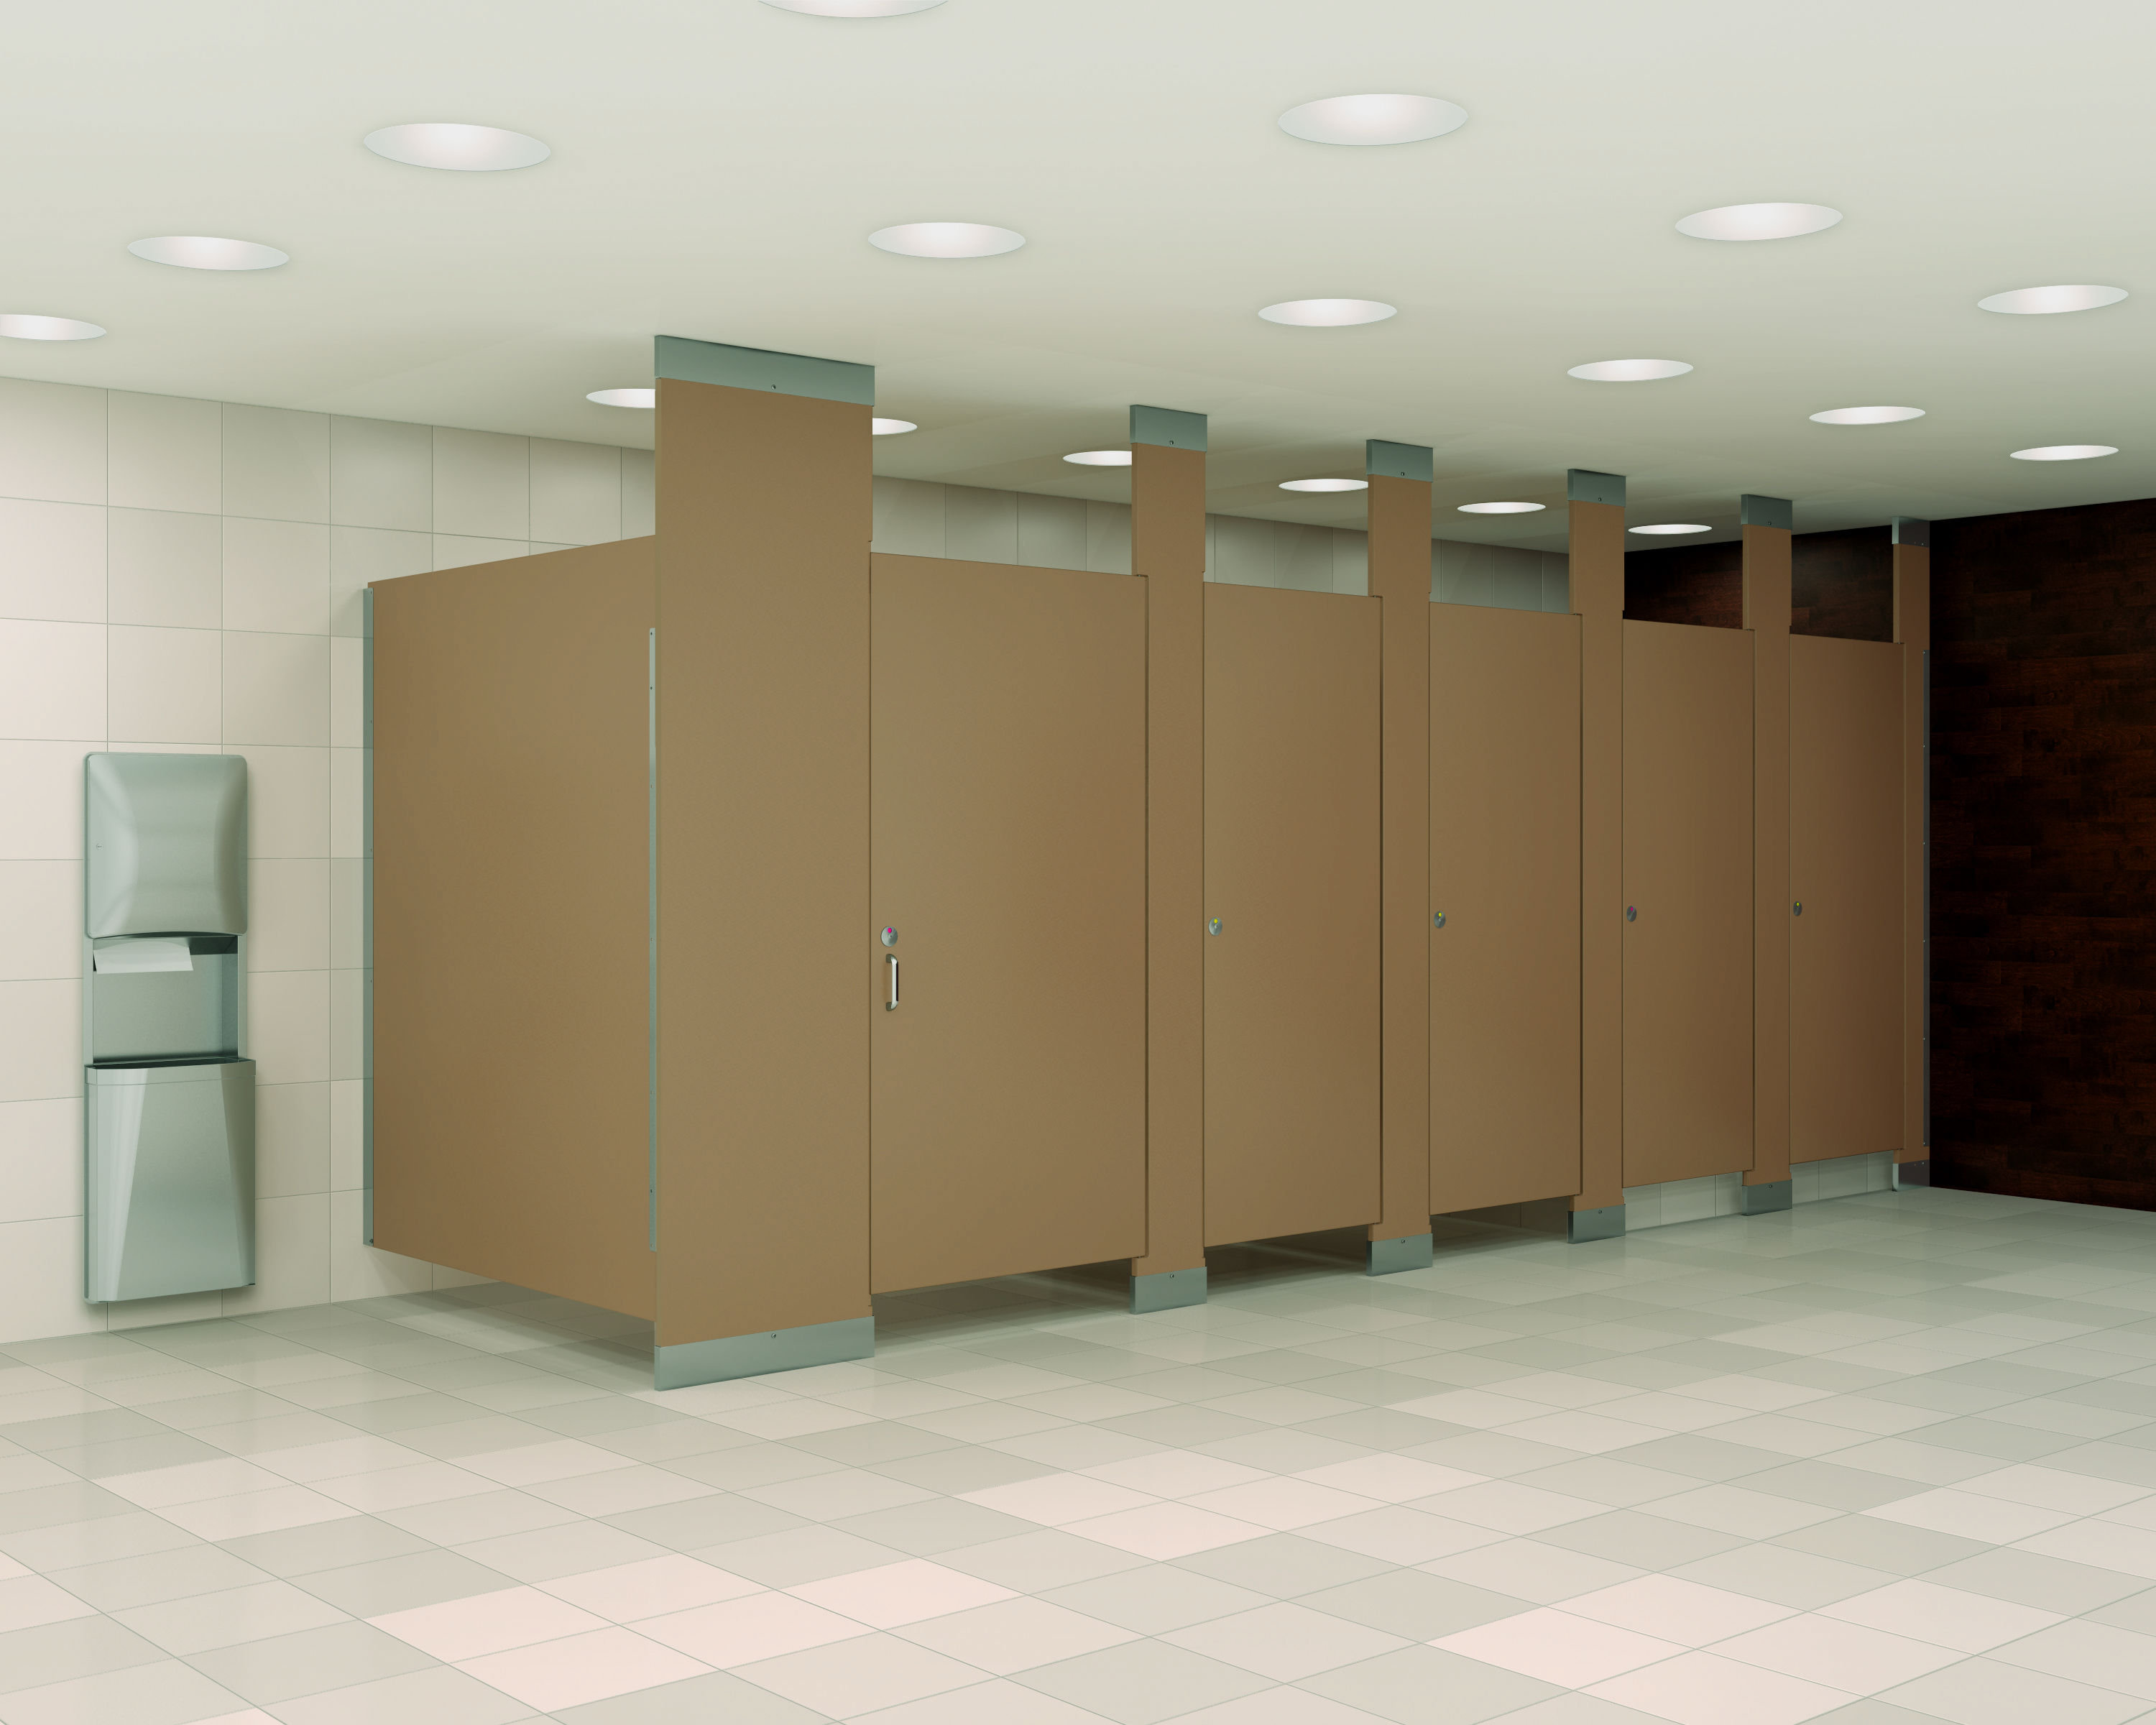 Bathroom Partitions Materials commercial public restroom toilet dividers sales & design |